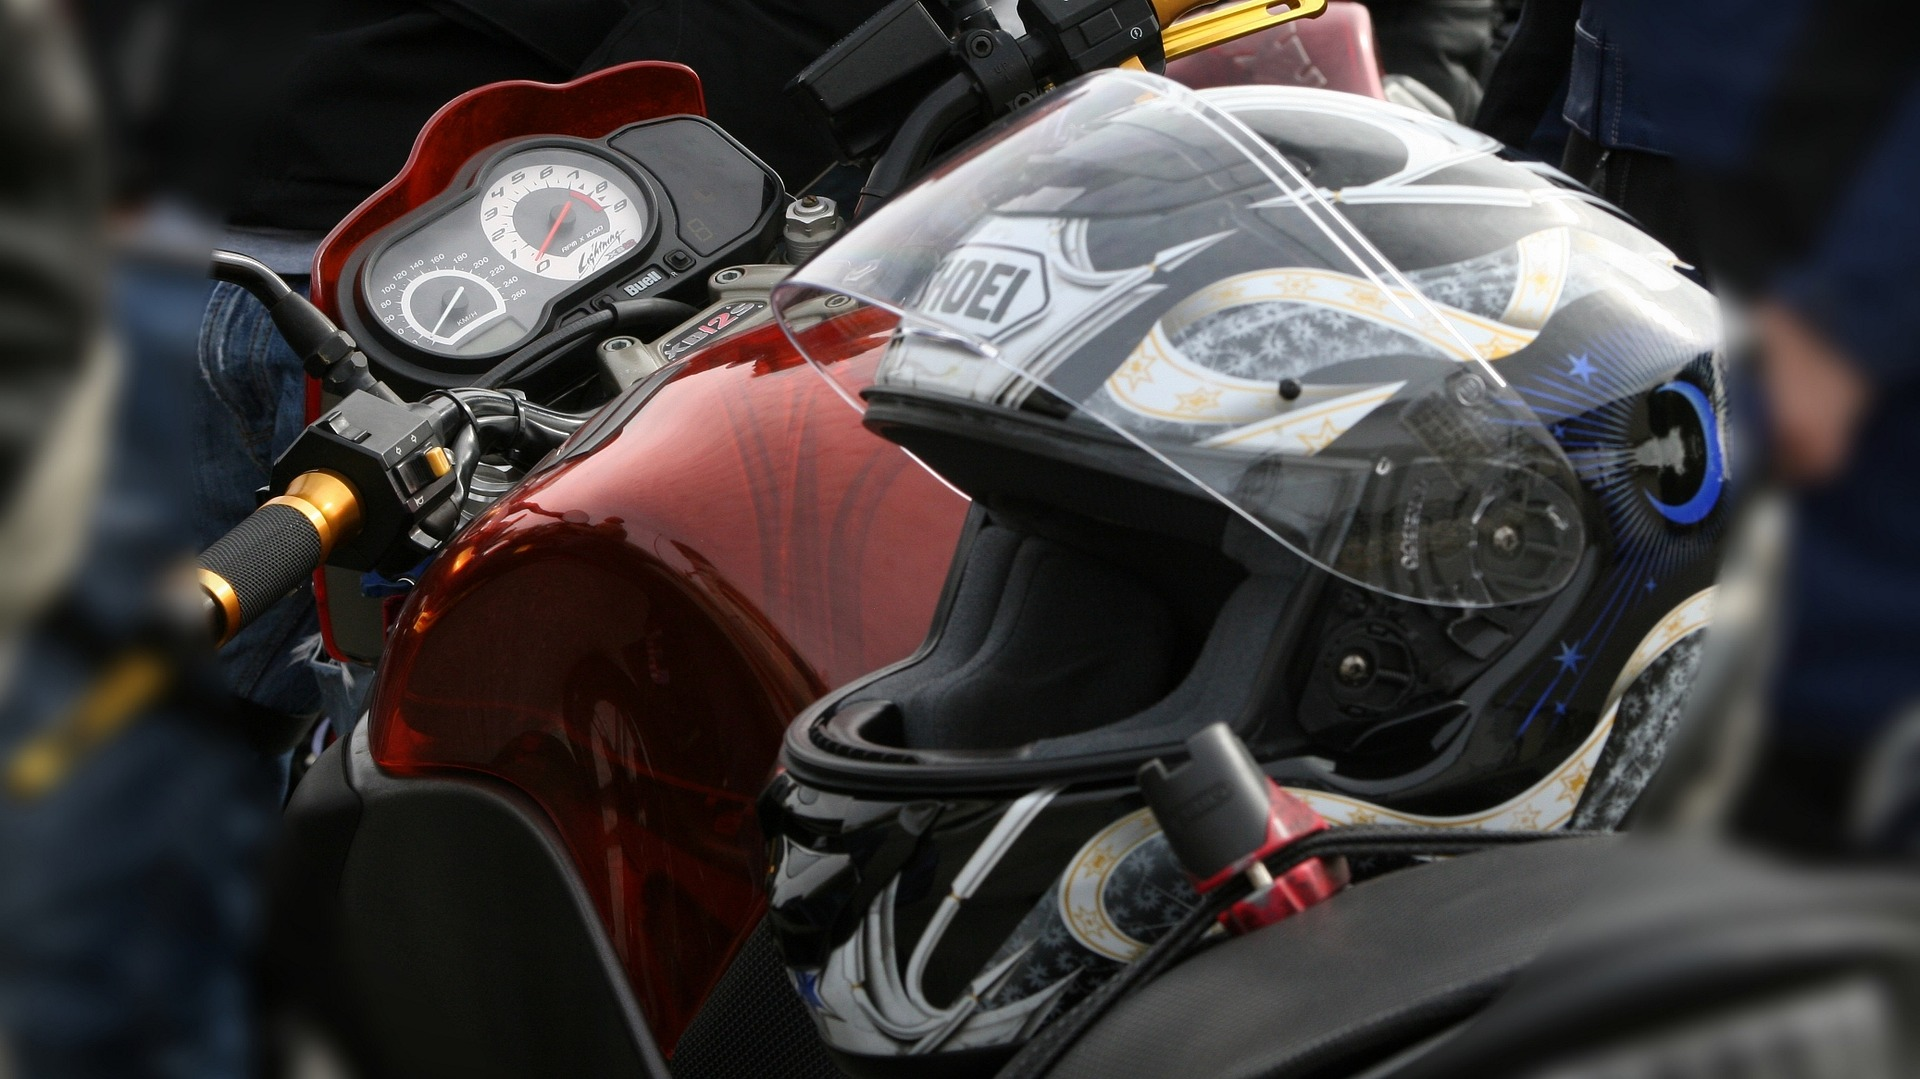 helmet in a motorcycle